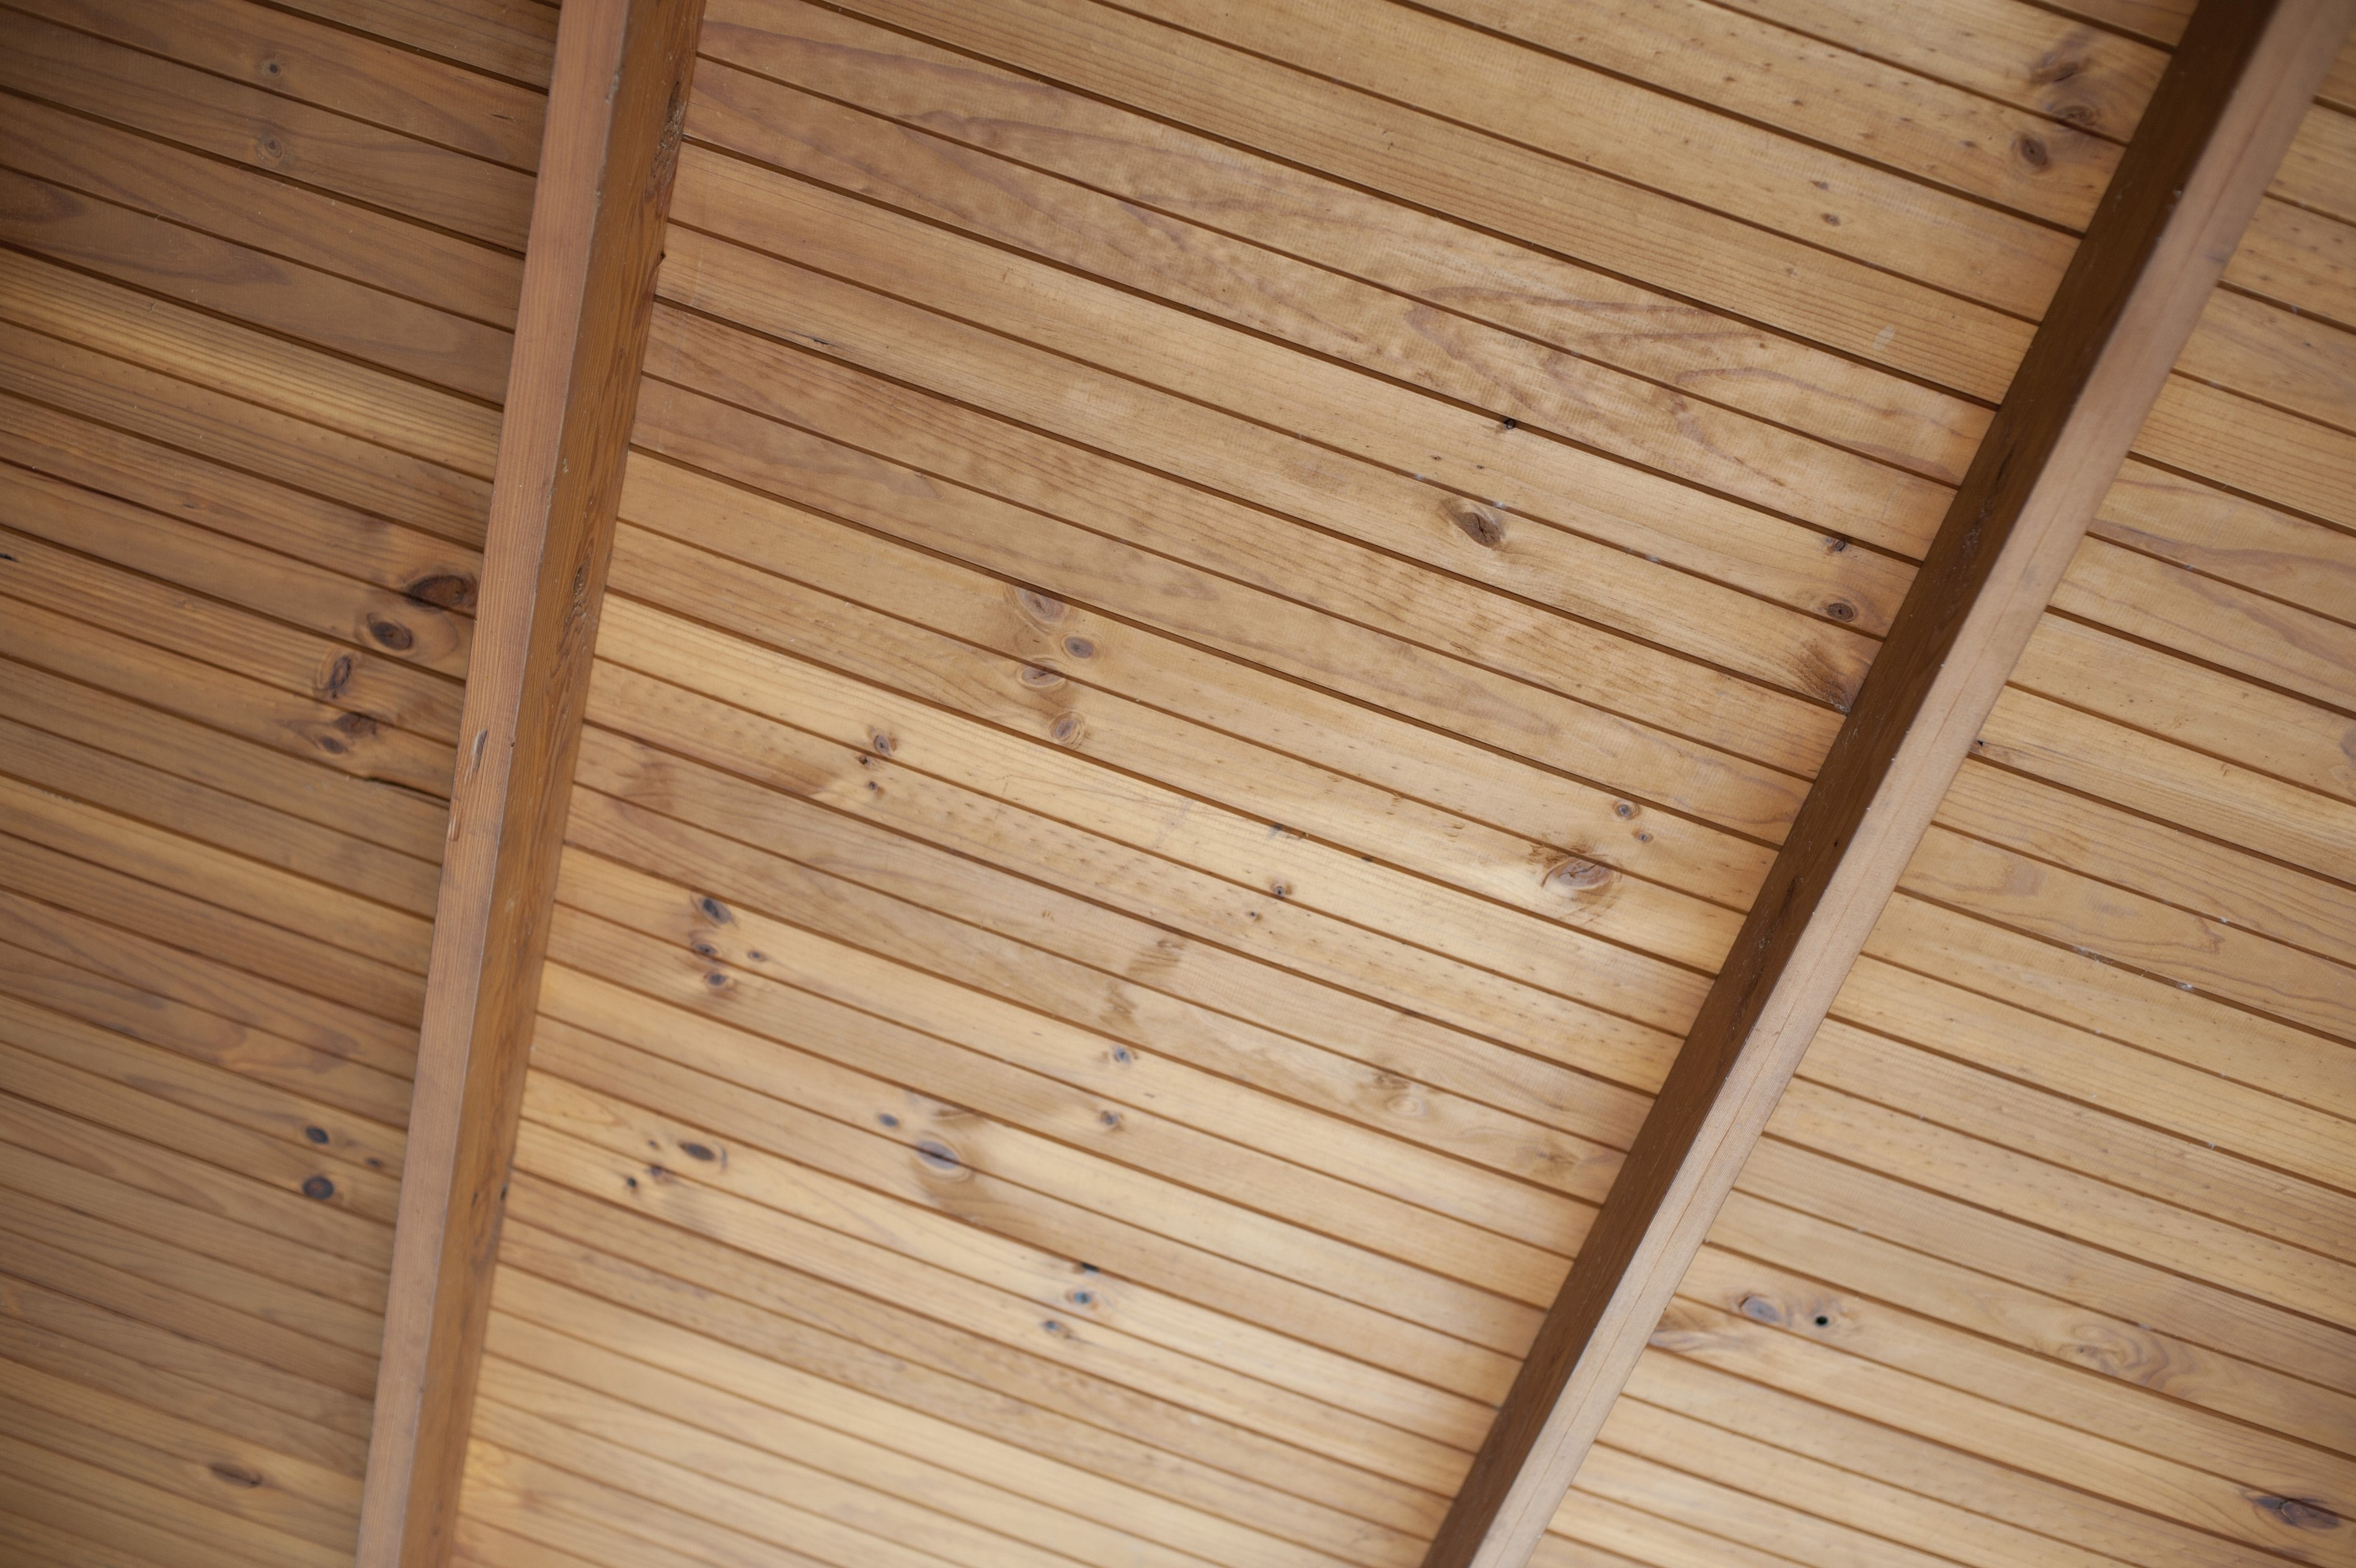 View from underneath of a wooden ceiling made from natural unpolished wooden planks on cross beams